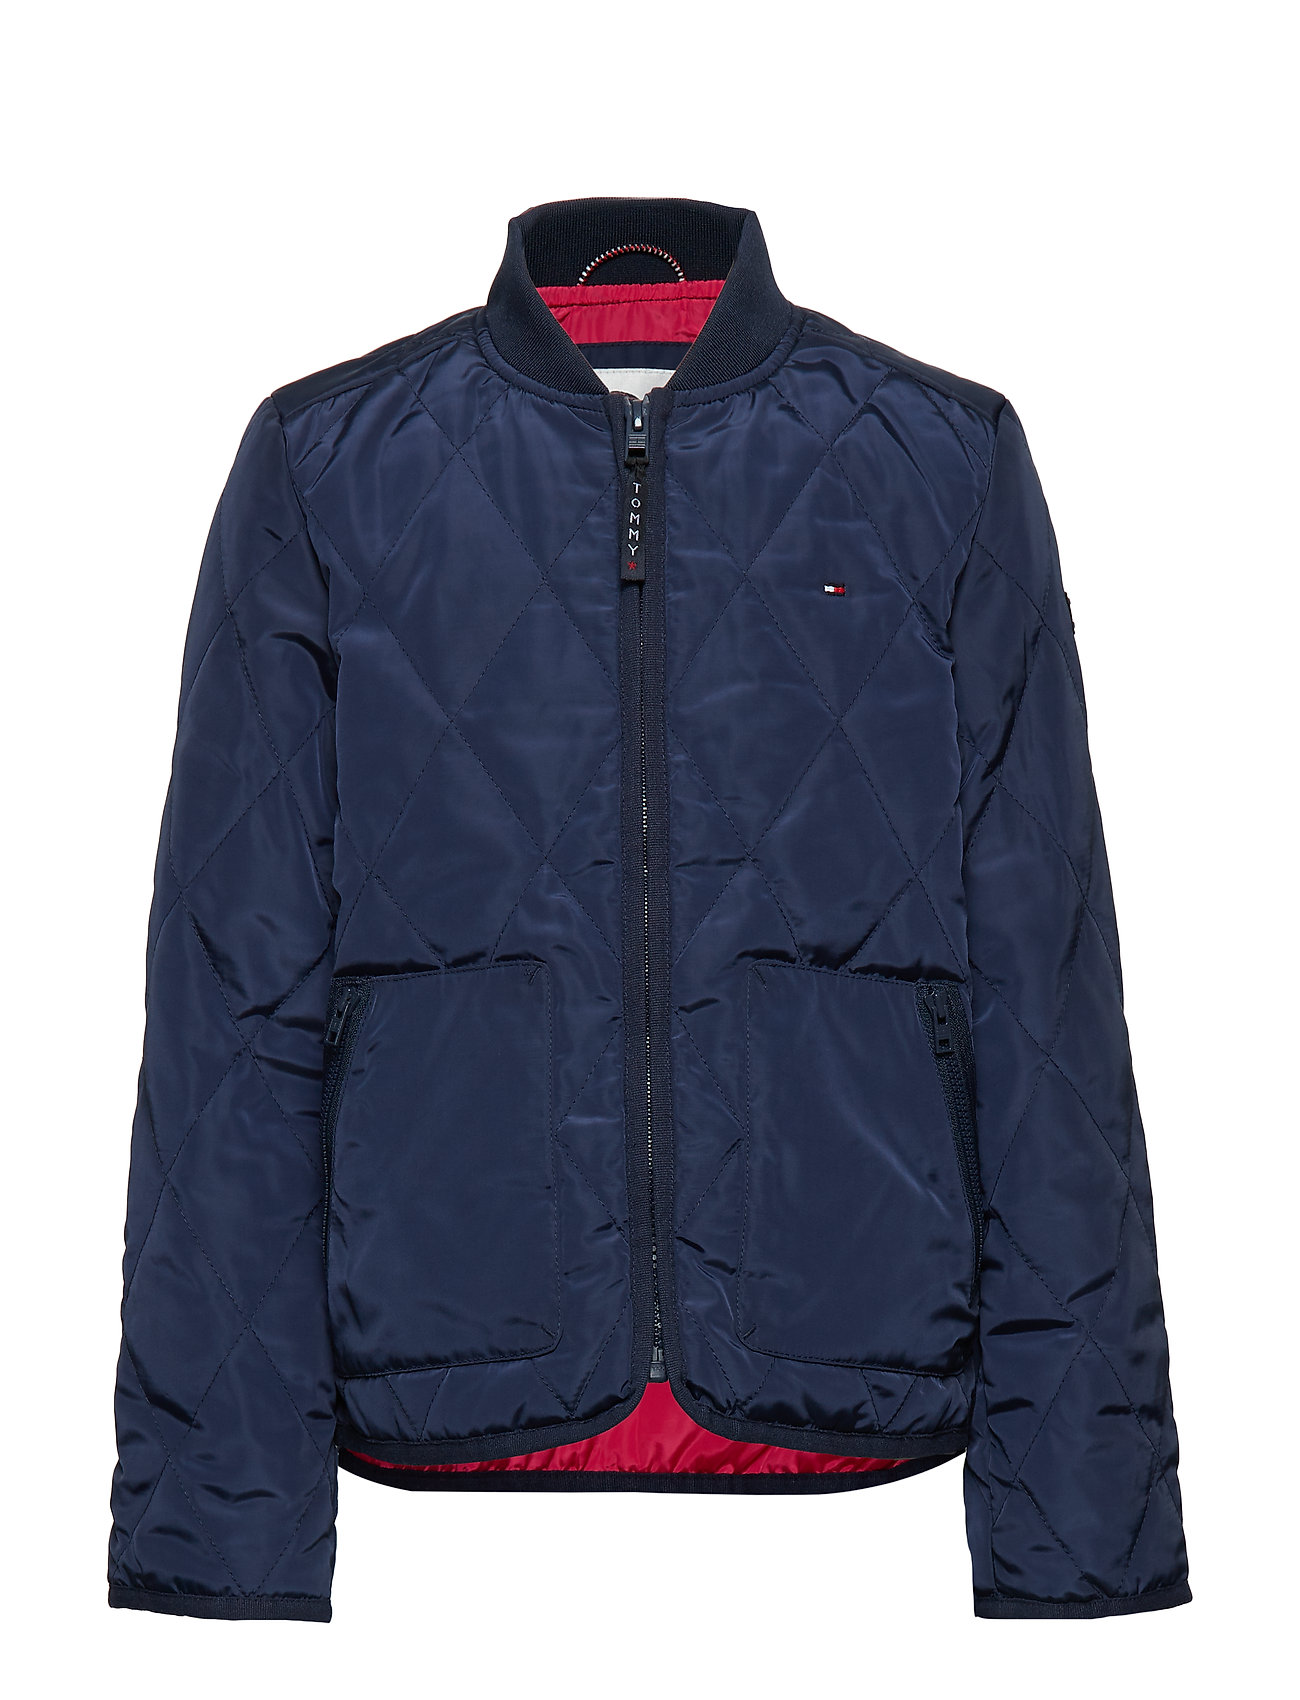 Tommy Hilfiger RECYCLED CASUAL QUIL - BLACK IRIS / VIRTUAL PINK